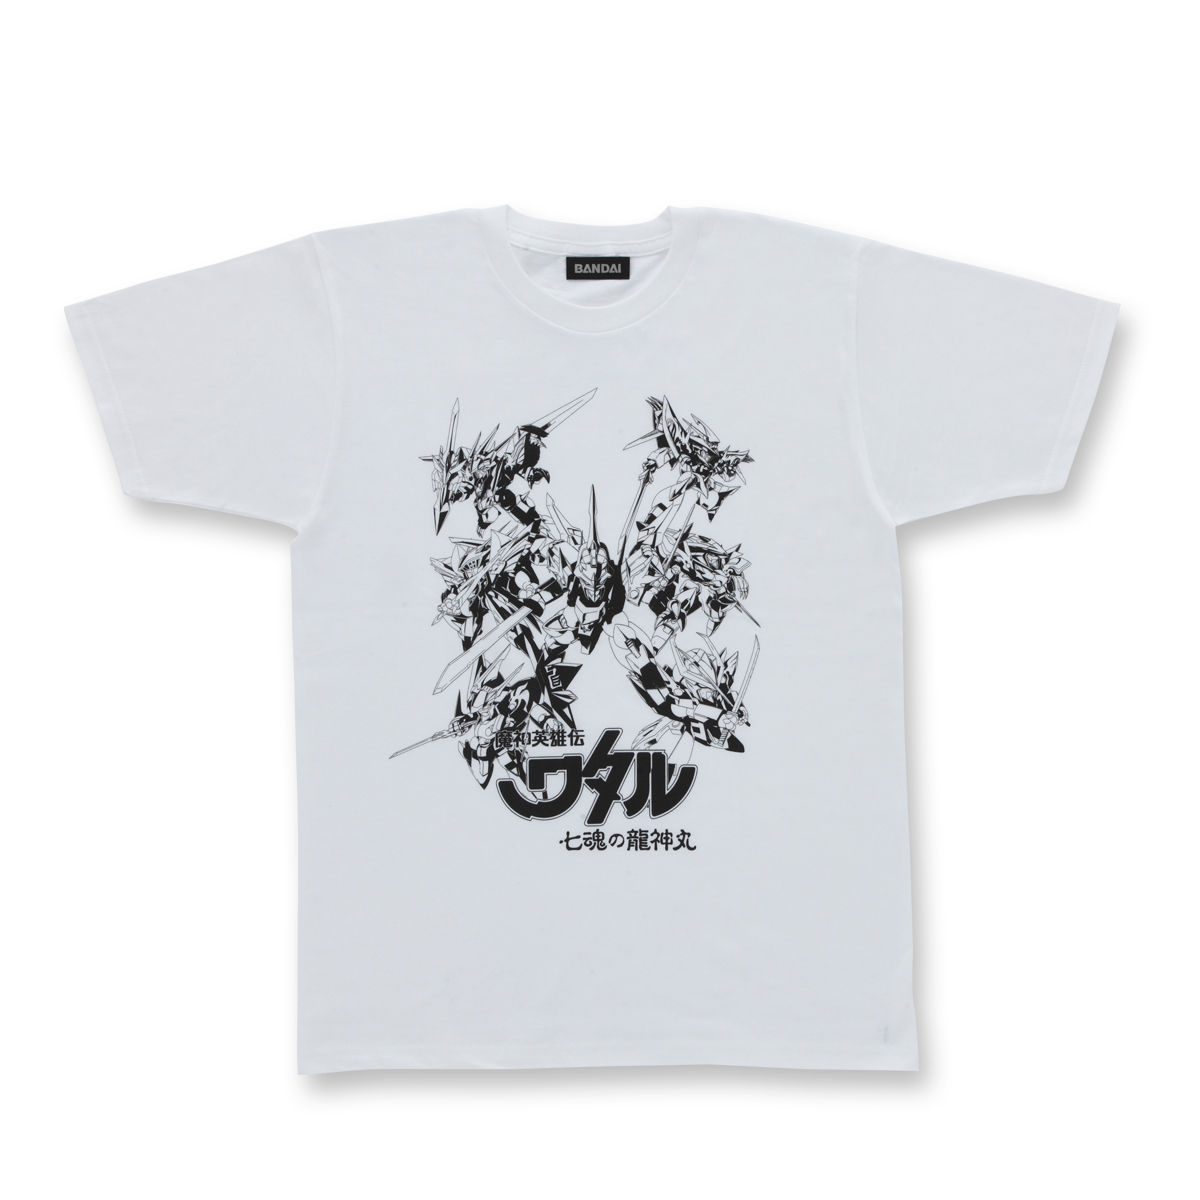 Mashin T-shirt—Mashin Hero Wataru: The Seven Spirits of Ryujinmaru